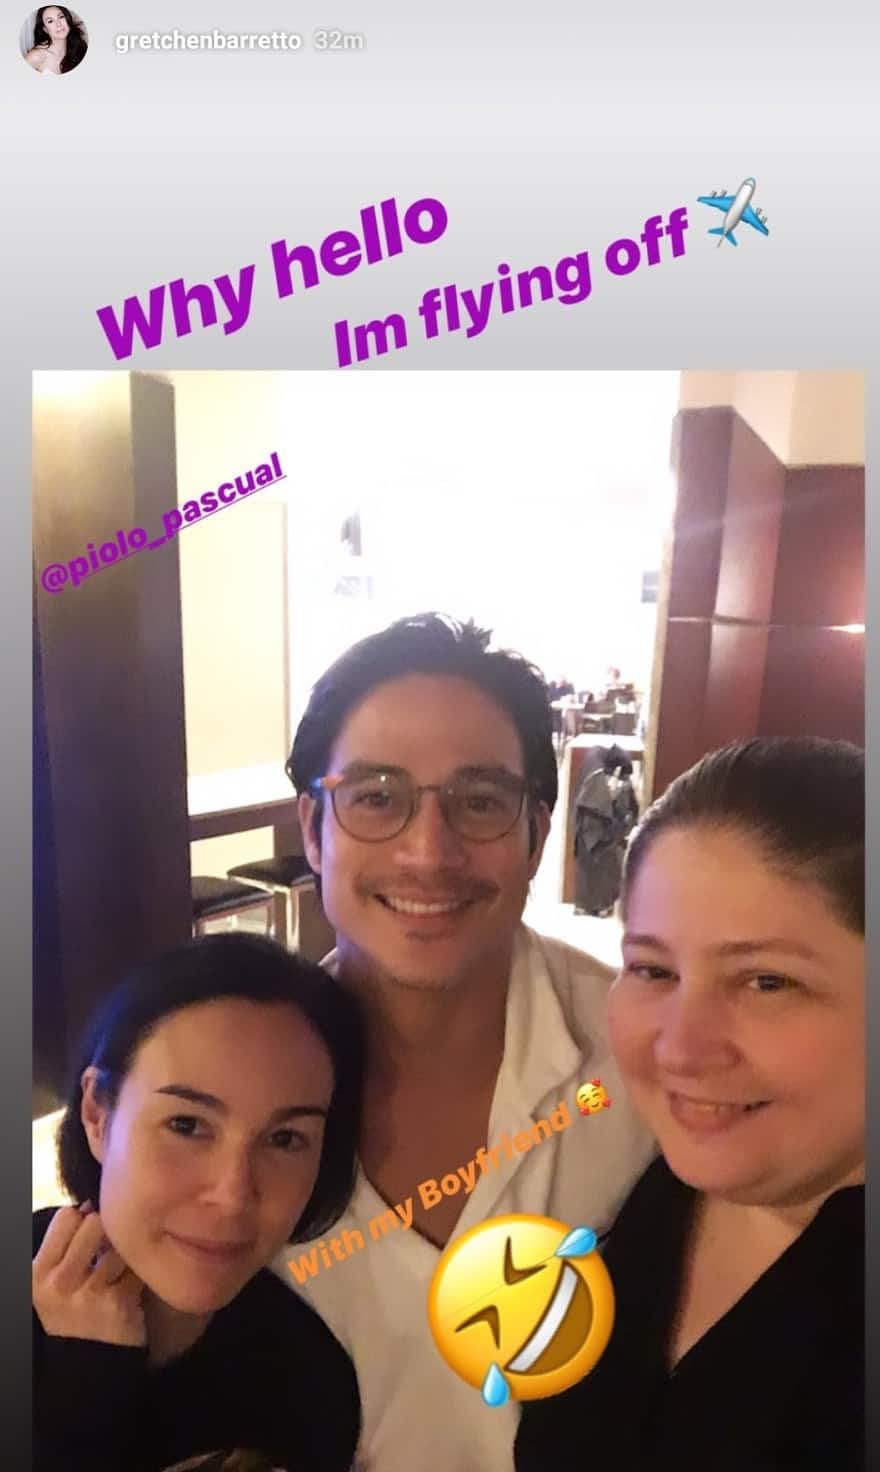 Gretchen Barretto makes fun of sister Marjorie in her post about Piolo Pascual